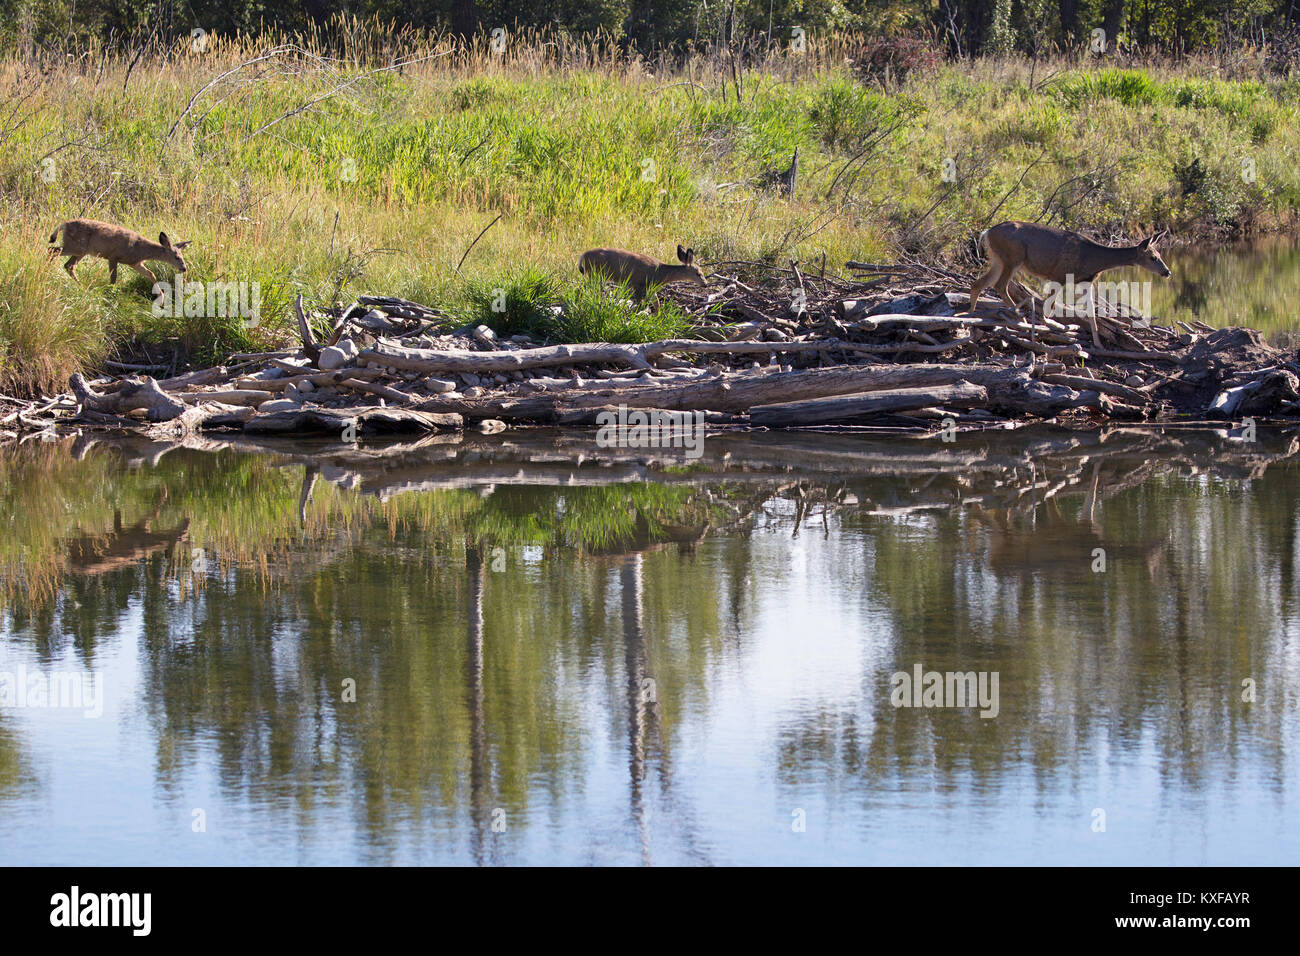 Mule Deer doe with fawns walking across beaver dam  (Odocoileus hemionus) - Stock Image